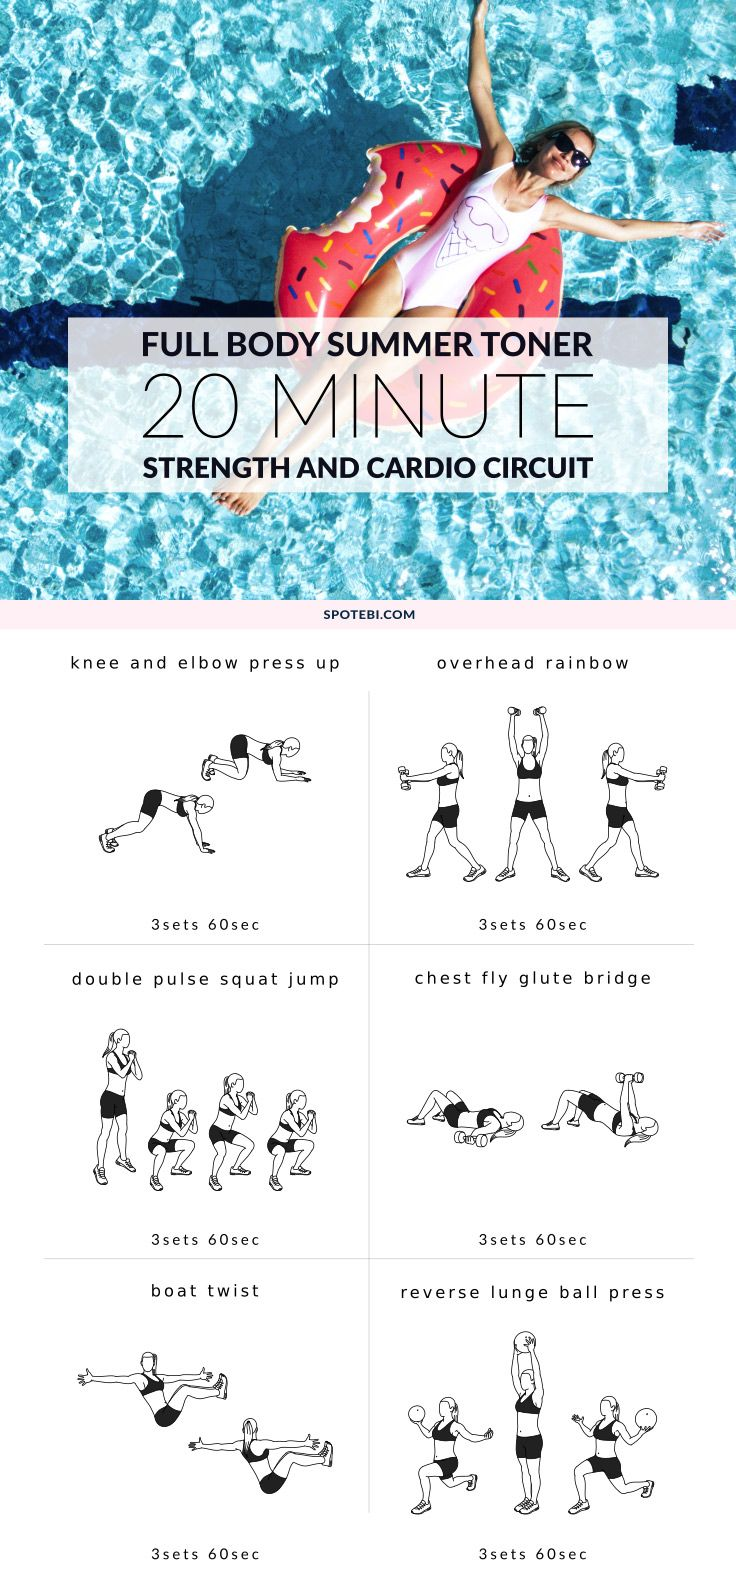 Stay in shape and tone your whole body in just 20 minutes with this full body summer workout! This total body toner routine improves your cardiovascular endurance, strengthens the core, lower and upper body and helps you burn some of those extra buffet calories! https://www.spotebi.com/workout-routines/20-minute-full-body-summer-workout/